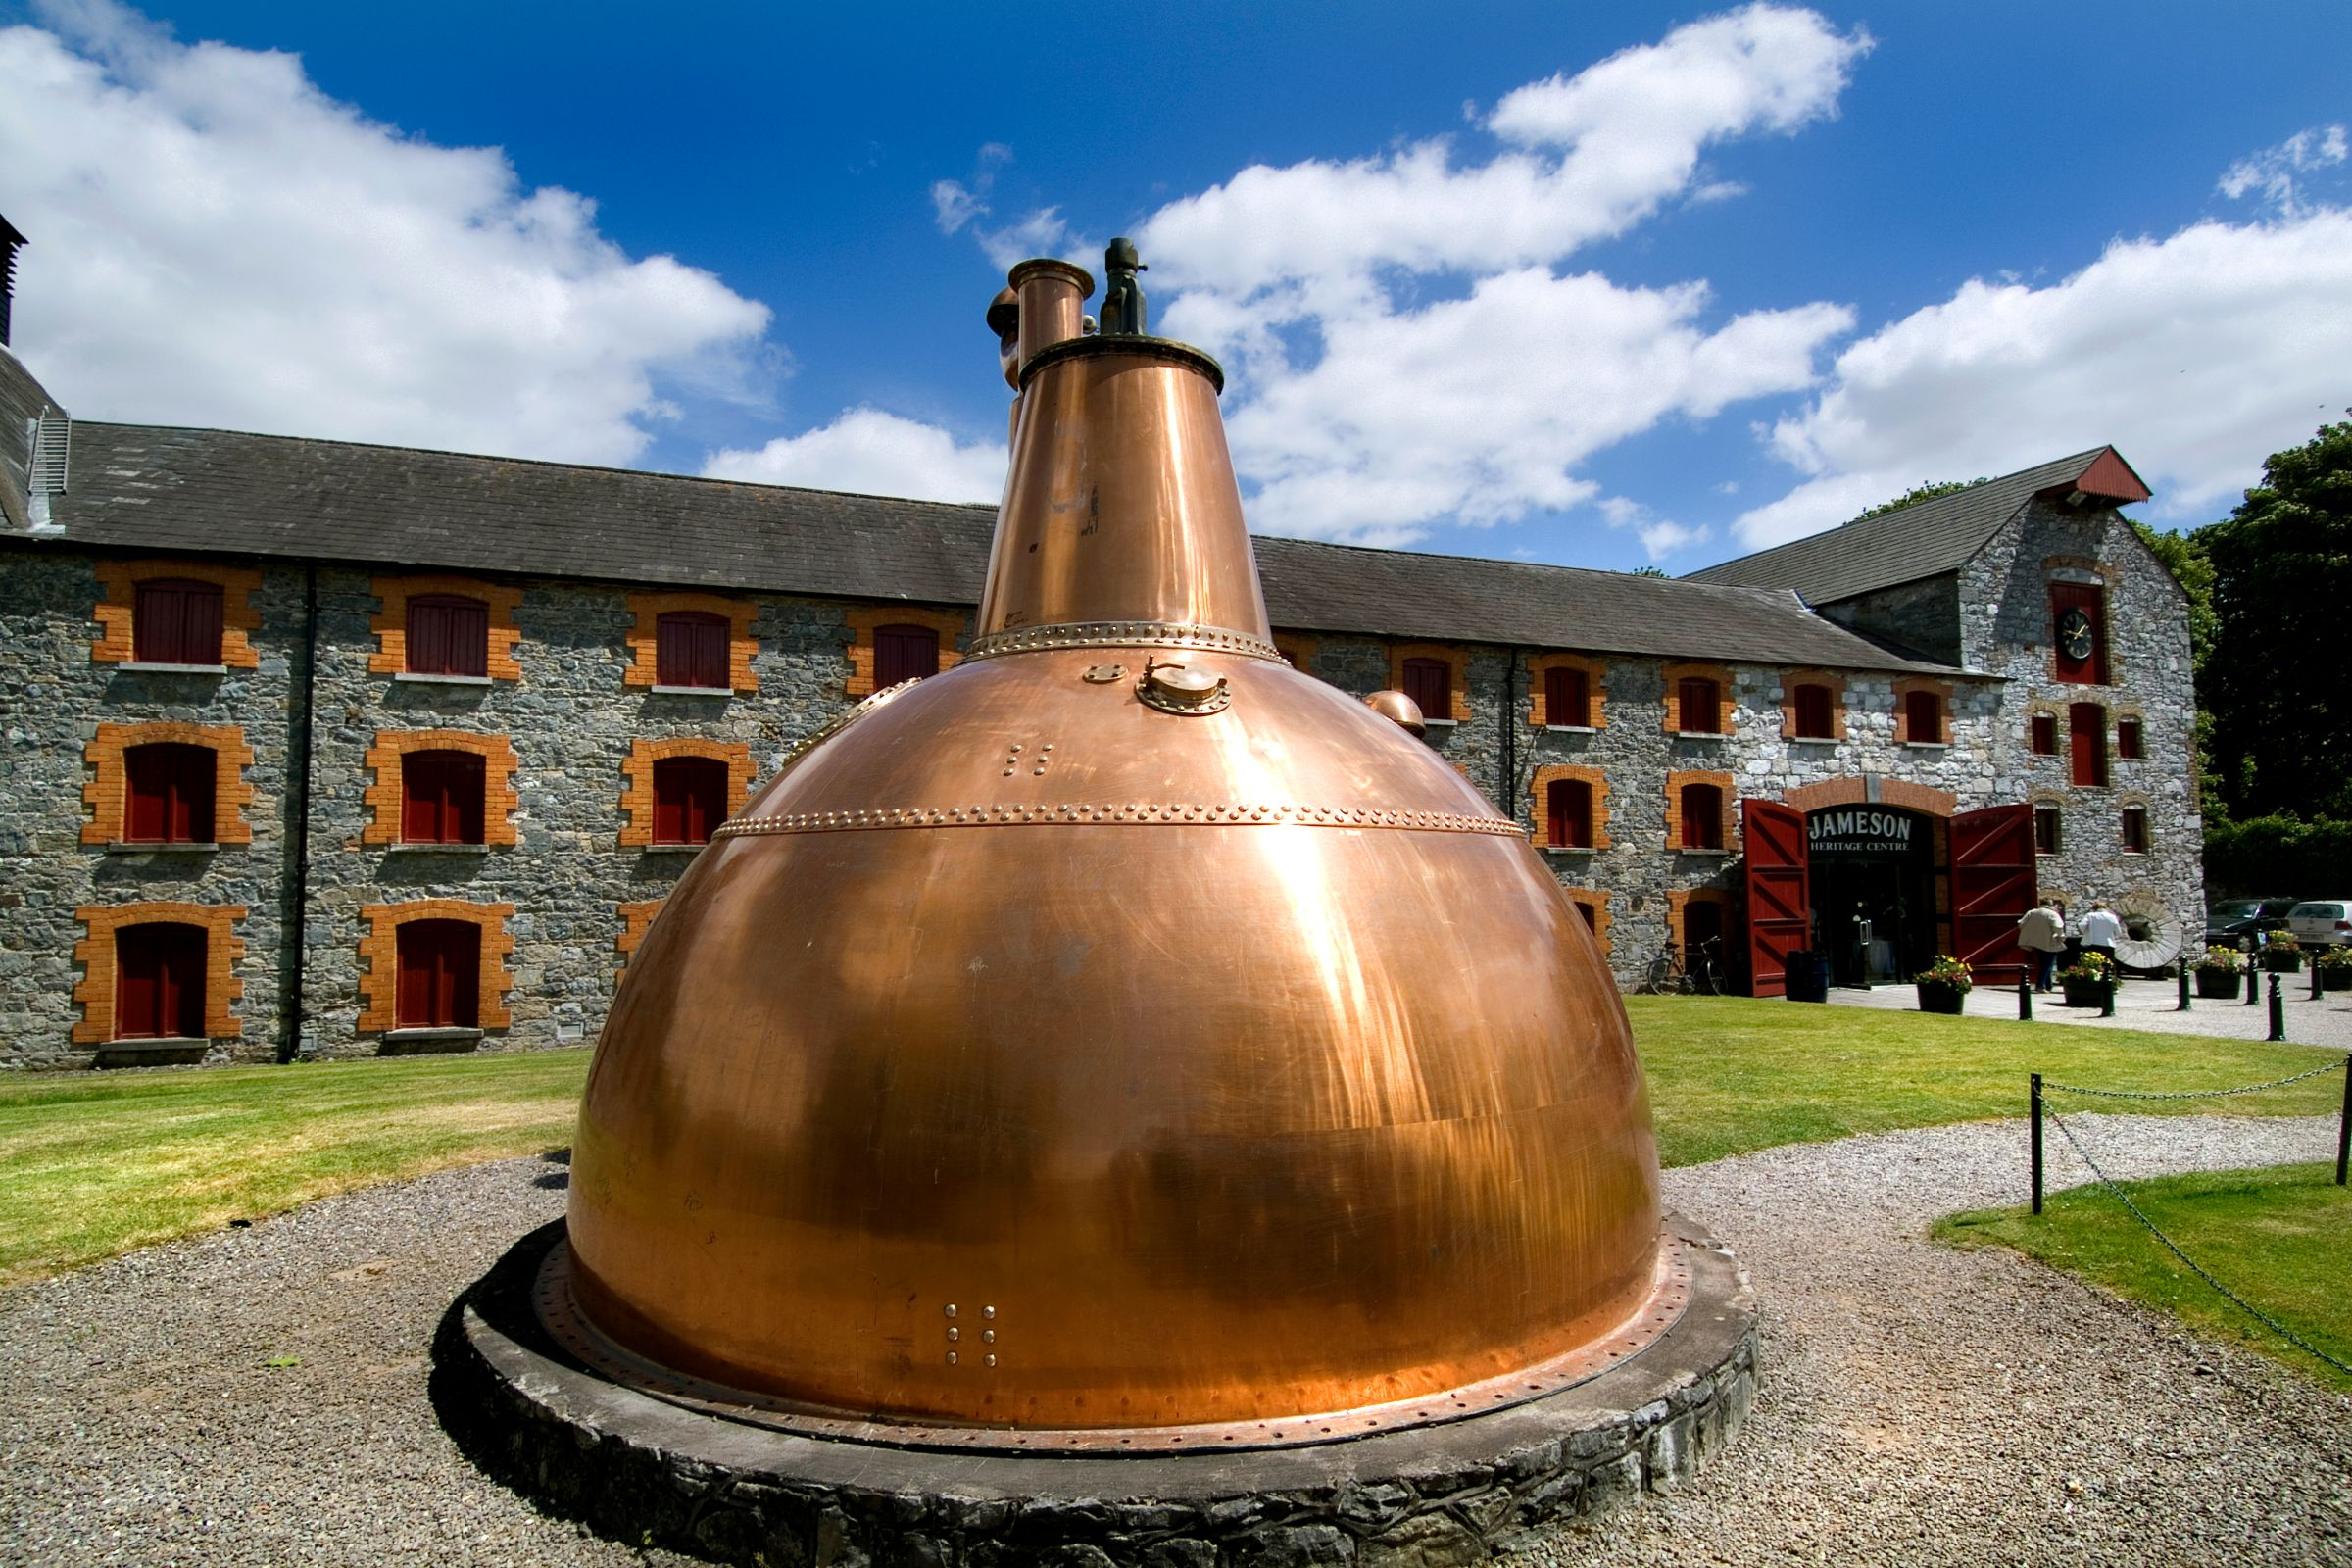 A large copper still outside a stone building.